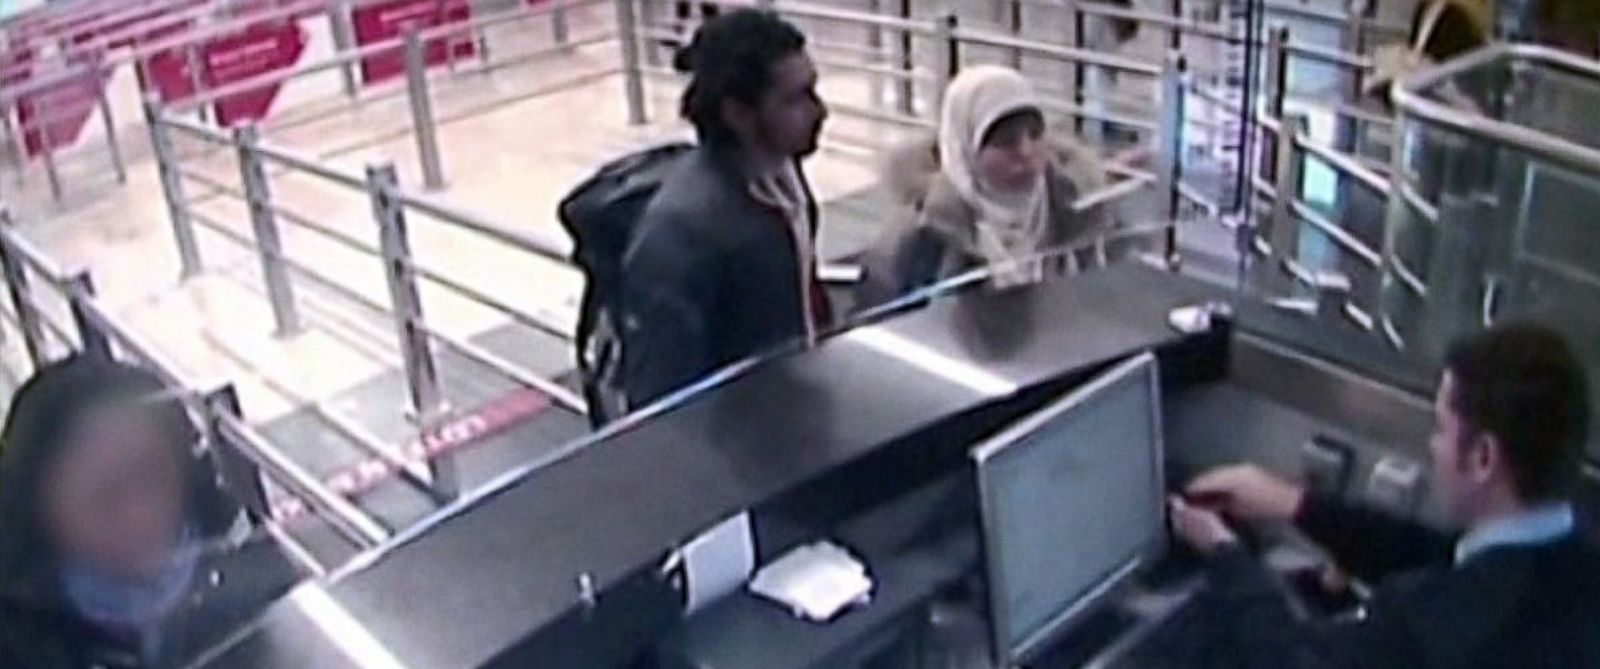 PHOTO: Turkish media reported that video has emerged apparently showing Hayat Boumeddiene, right, traveling through Istanbul airport, Jan. 2, 2015 next to an unidentified man, left.